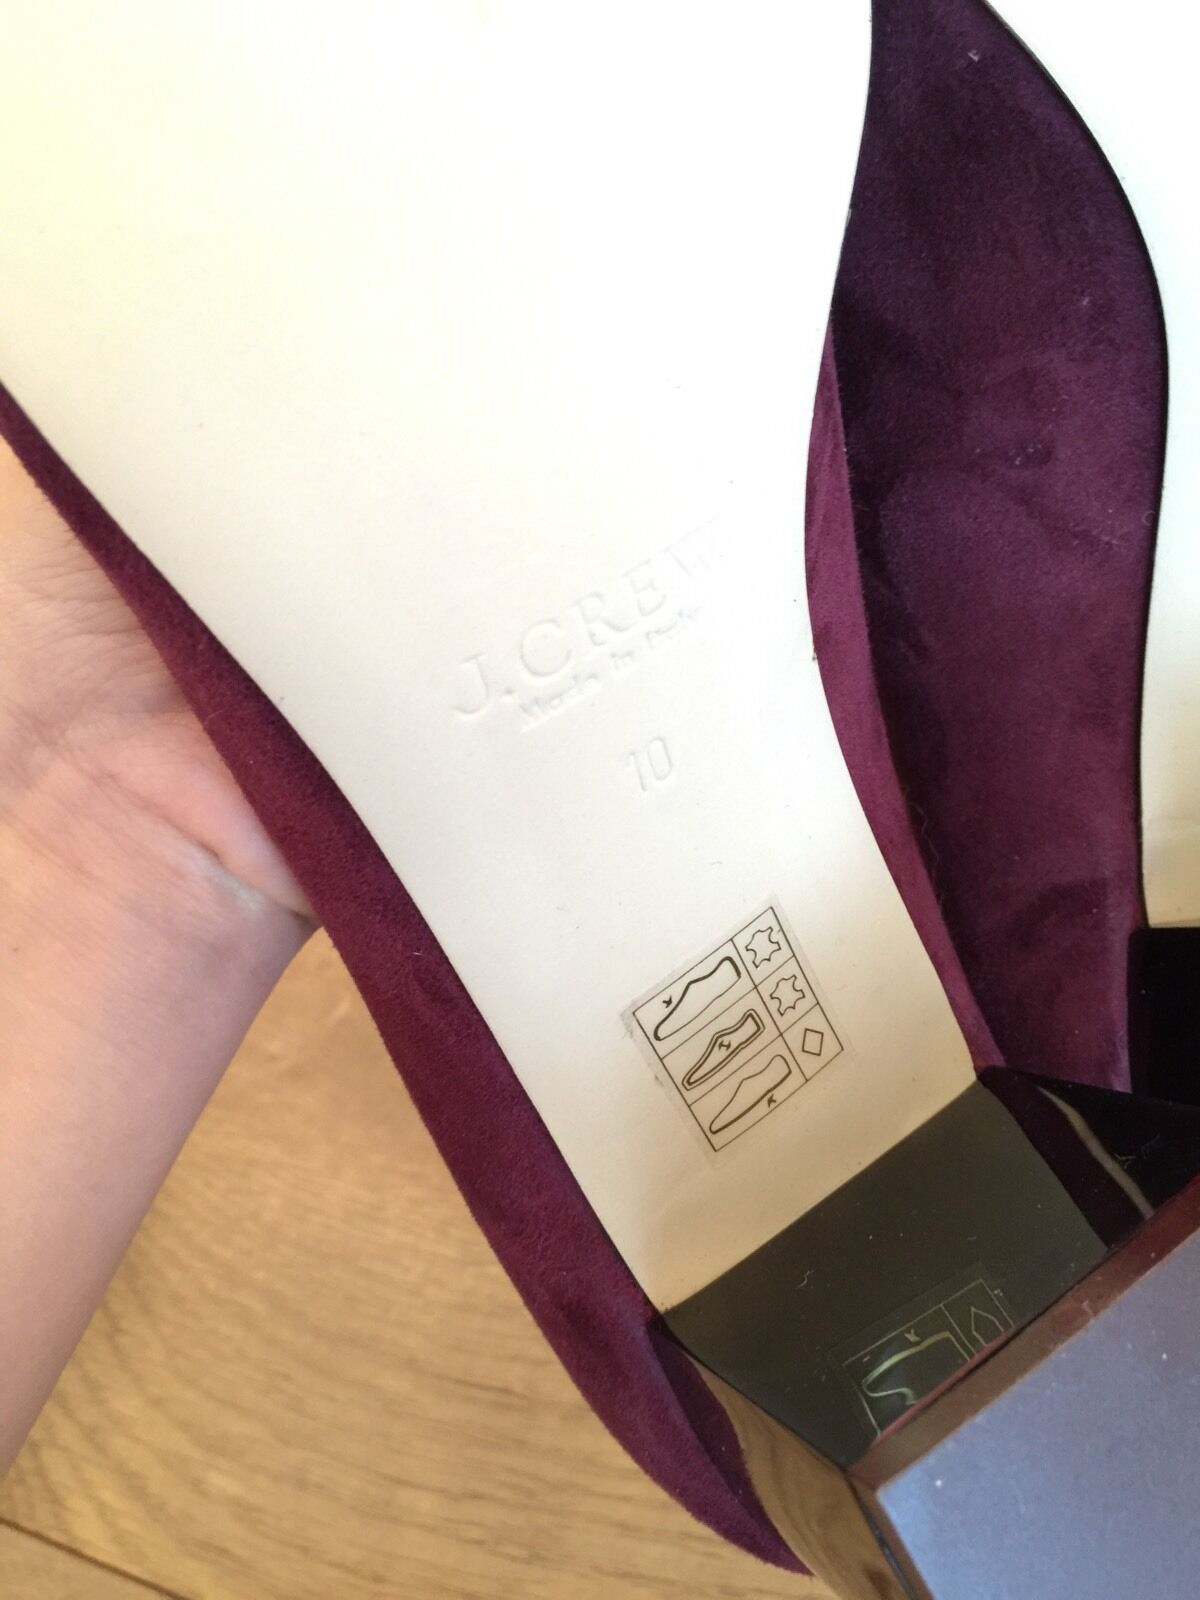 New JCrew Lucite Heels in Suede 10  218 218 218 vintage cabernet rot schuhe f5959 SOLDOUT 696c1a